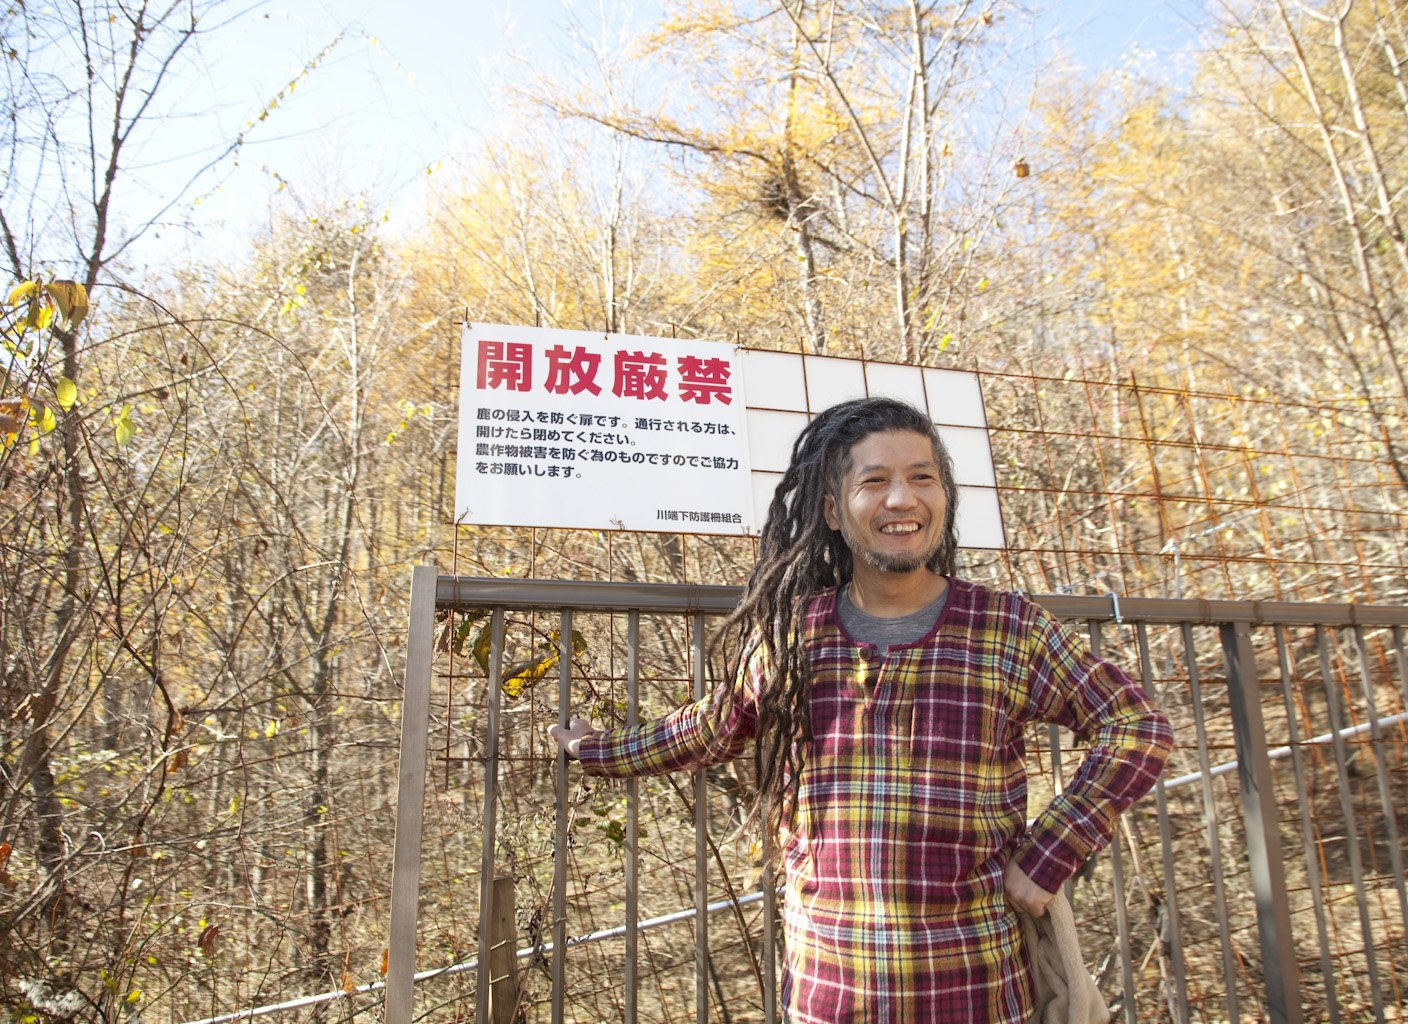 The dreadlocked Ishii Hideaki grins at the gate to the Kobayashi's property.  Photo 25 of 28 in A Platform for Living